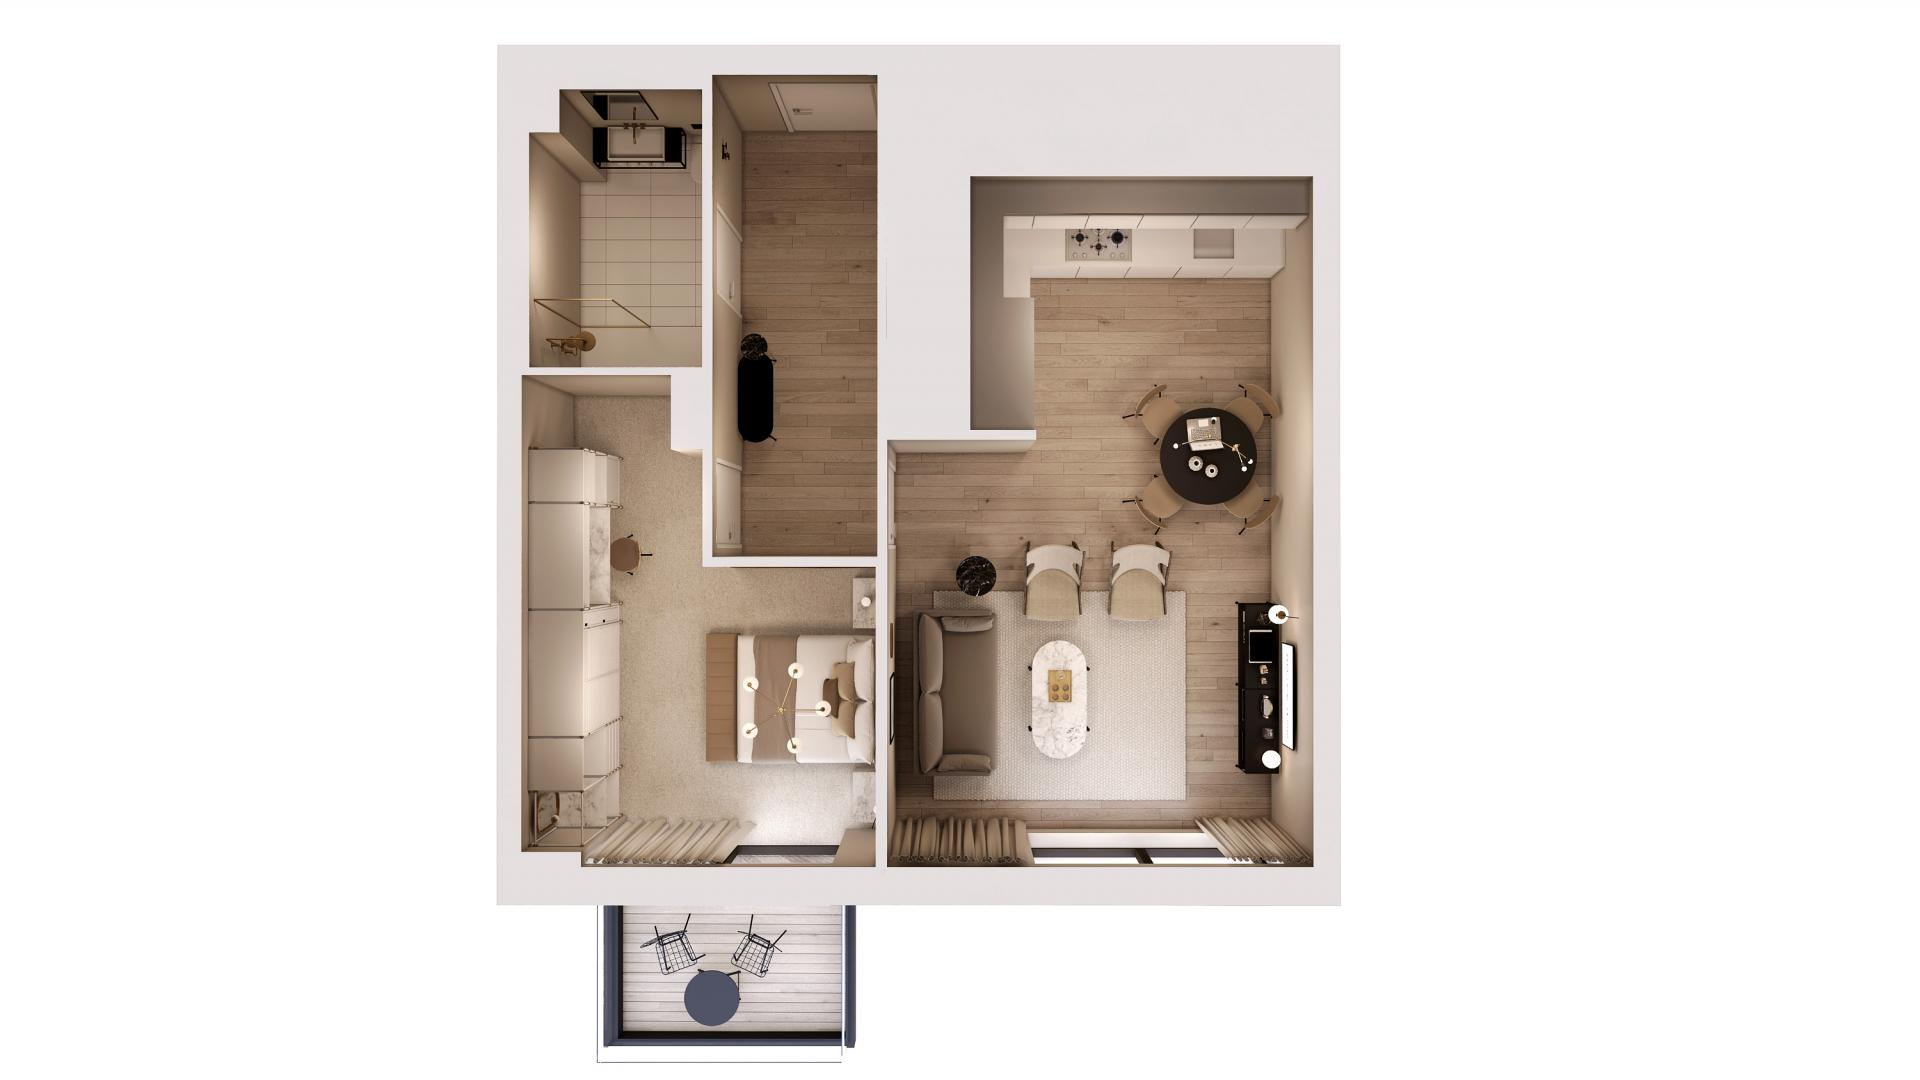 1 bed classic floor plan at STAY Camden Serviced Apartments, Camden, London